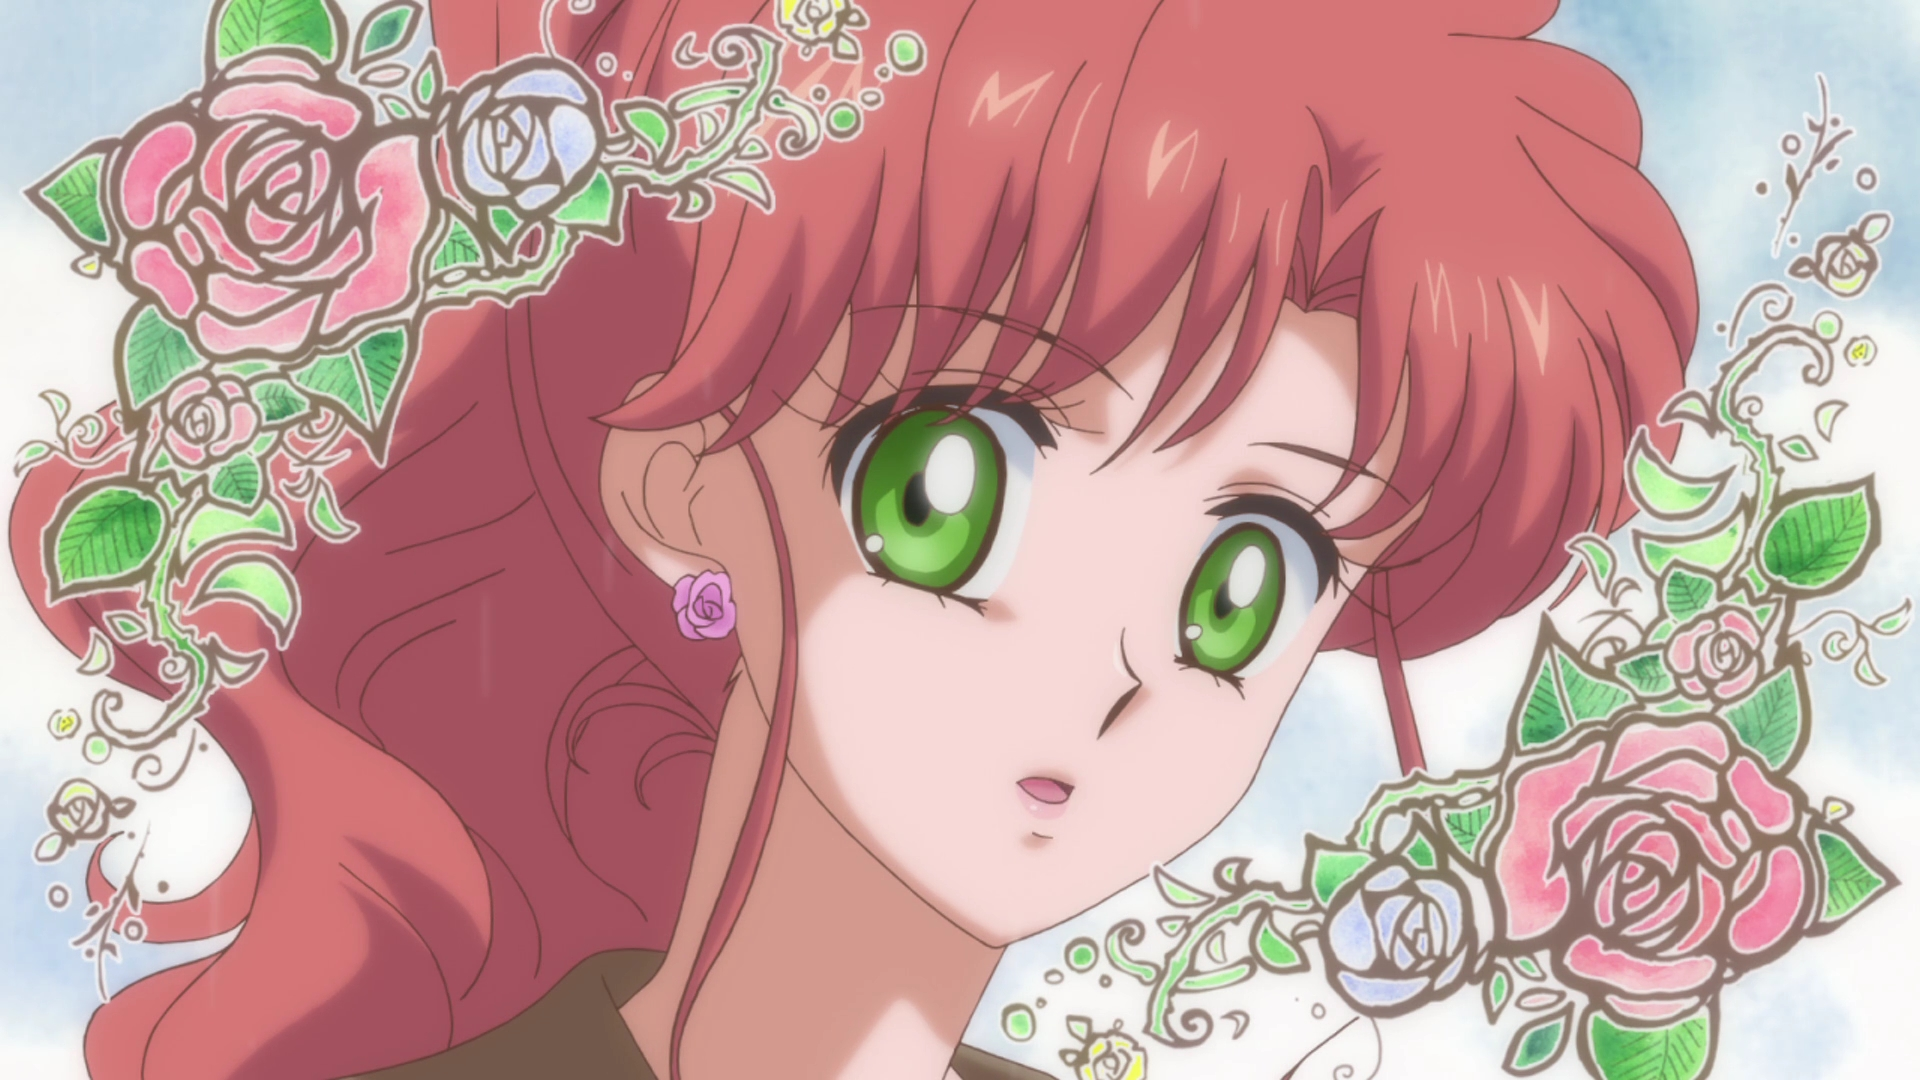 [HorribleSubs] Sailor Moon Crystal - 05 [1080p][20-22-25]